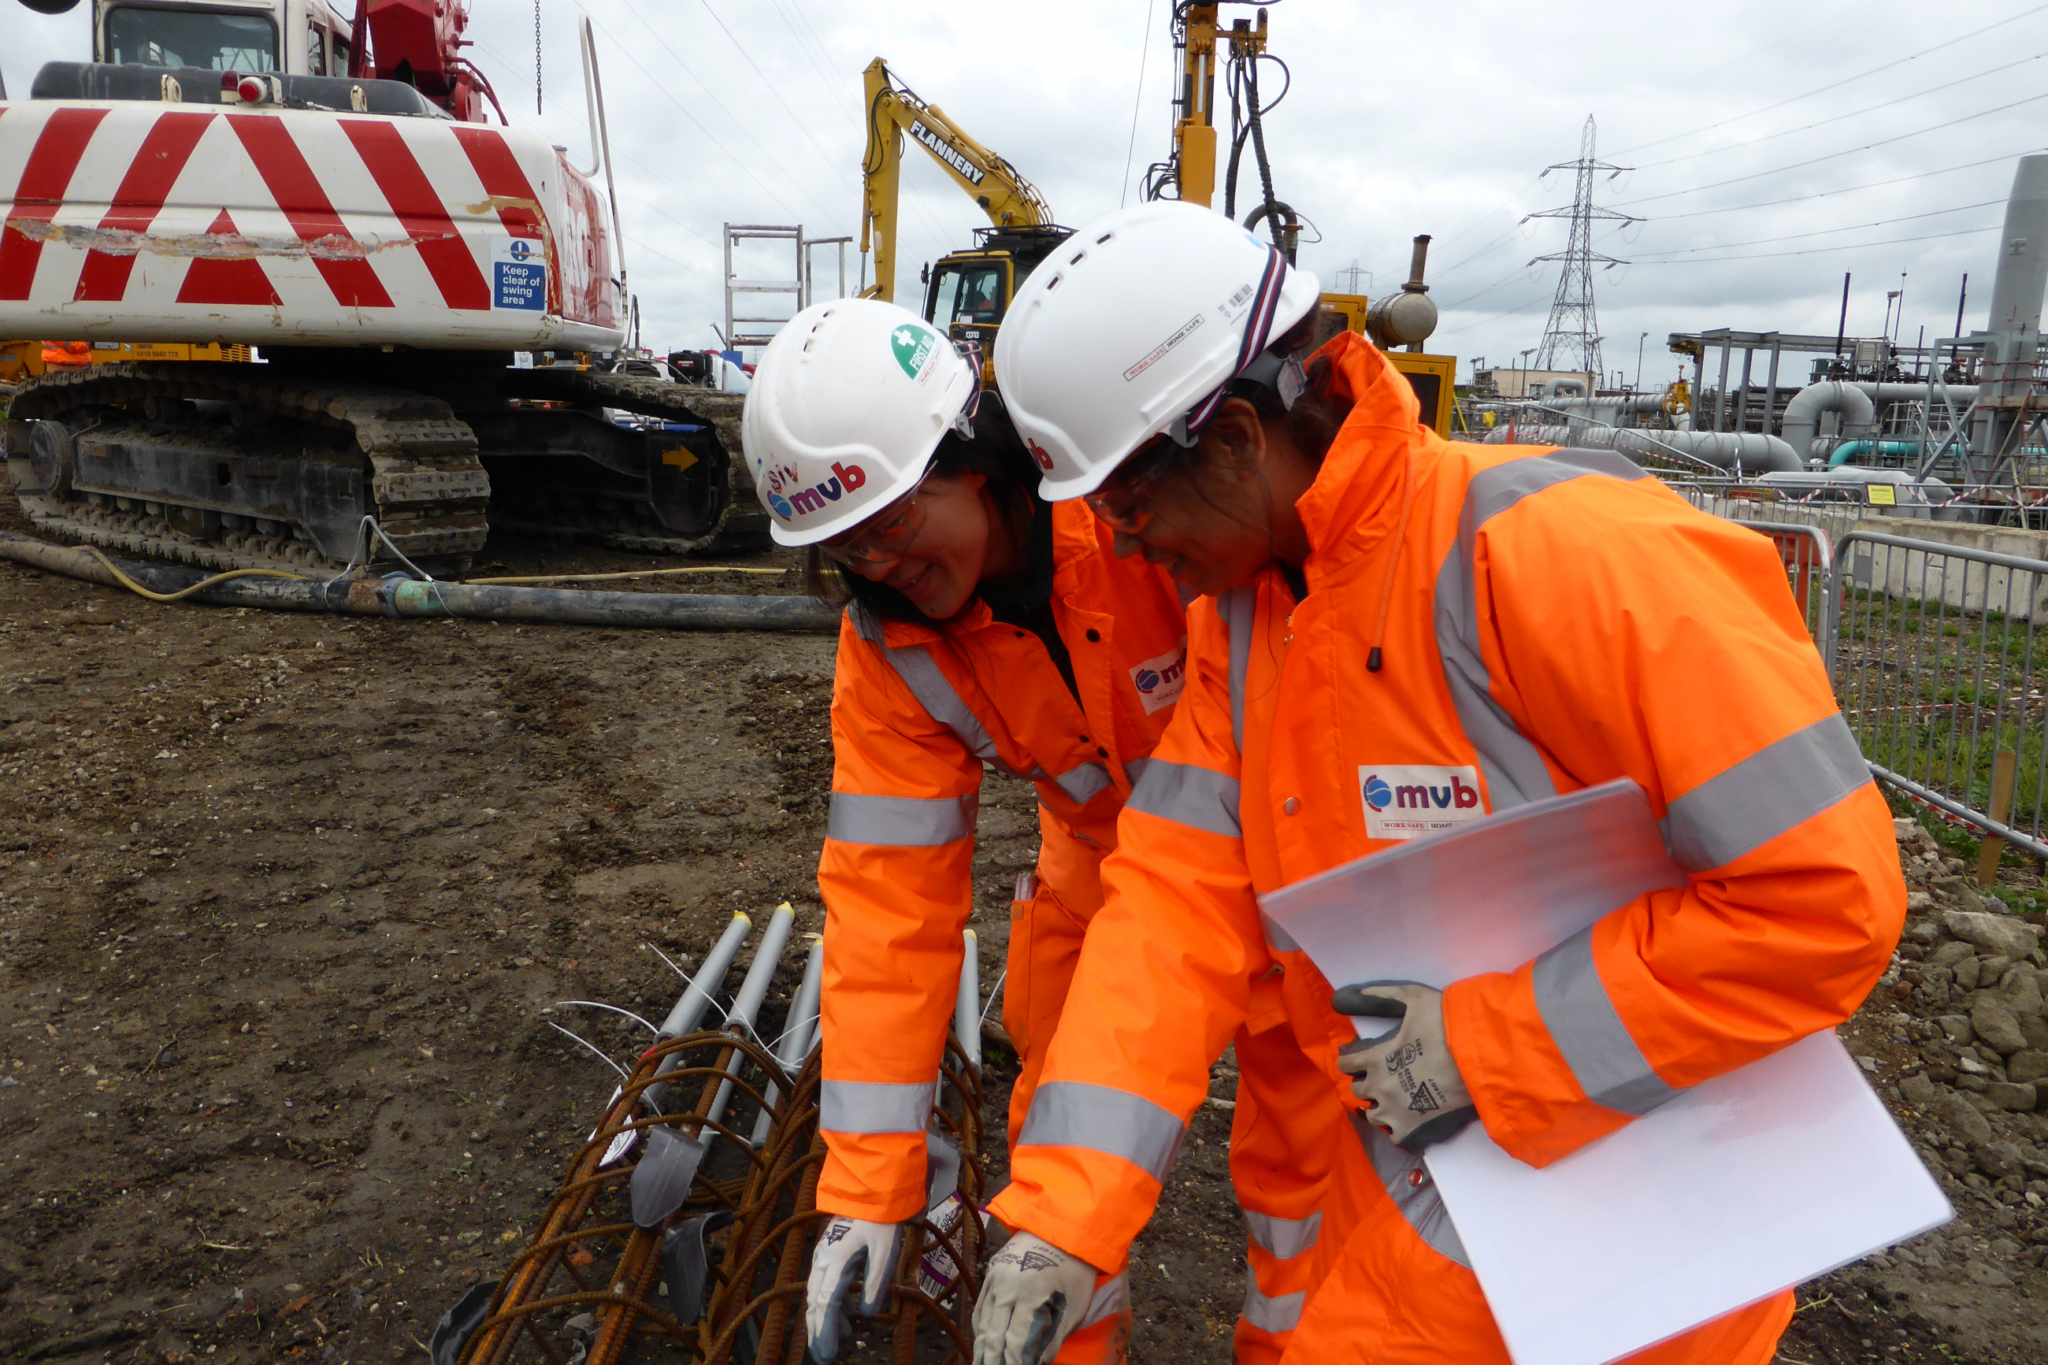 Sivilay Sayavong on site helping guide colleague in technical reinforcement detail in ppe